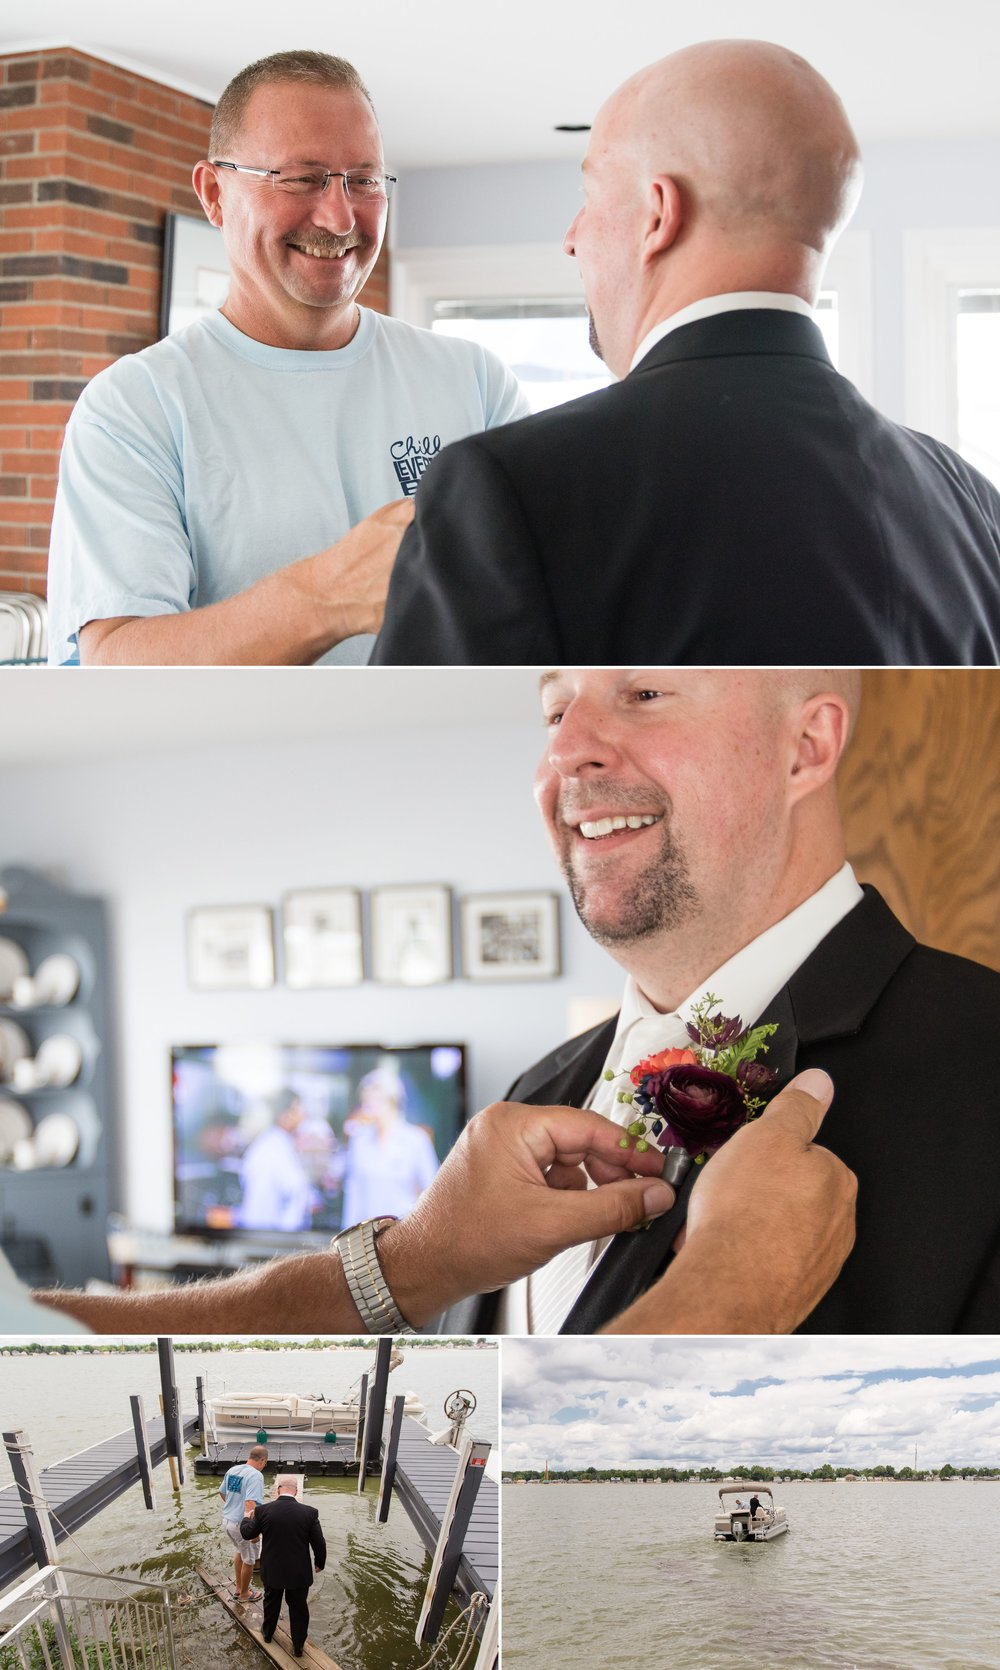 002-Buckeye-lake-winery-wedding-getting-ready-groom-columbus-ohio-wedding-photography-muschlitz-photography-02.JPG